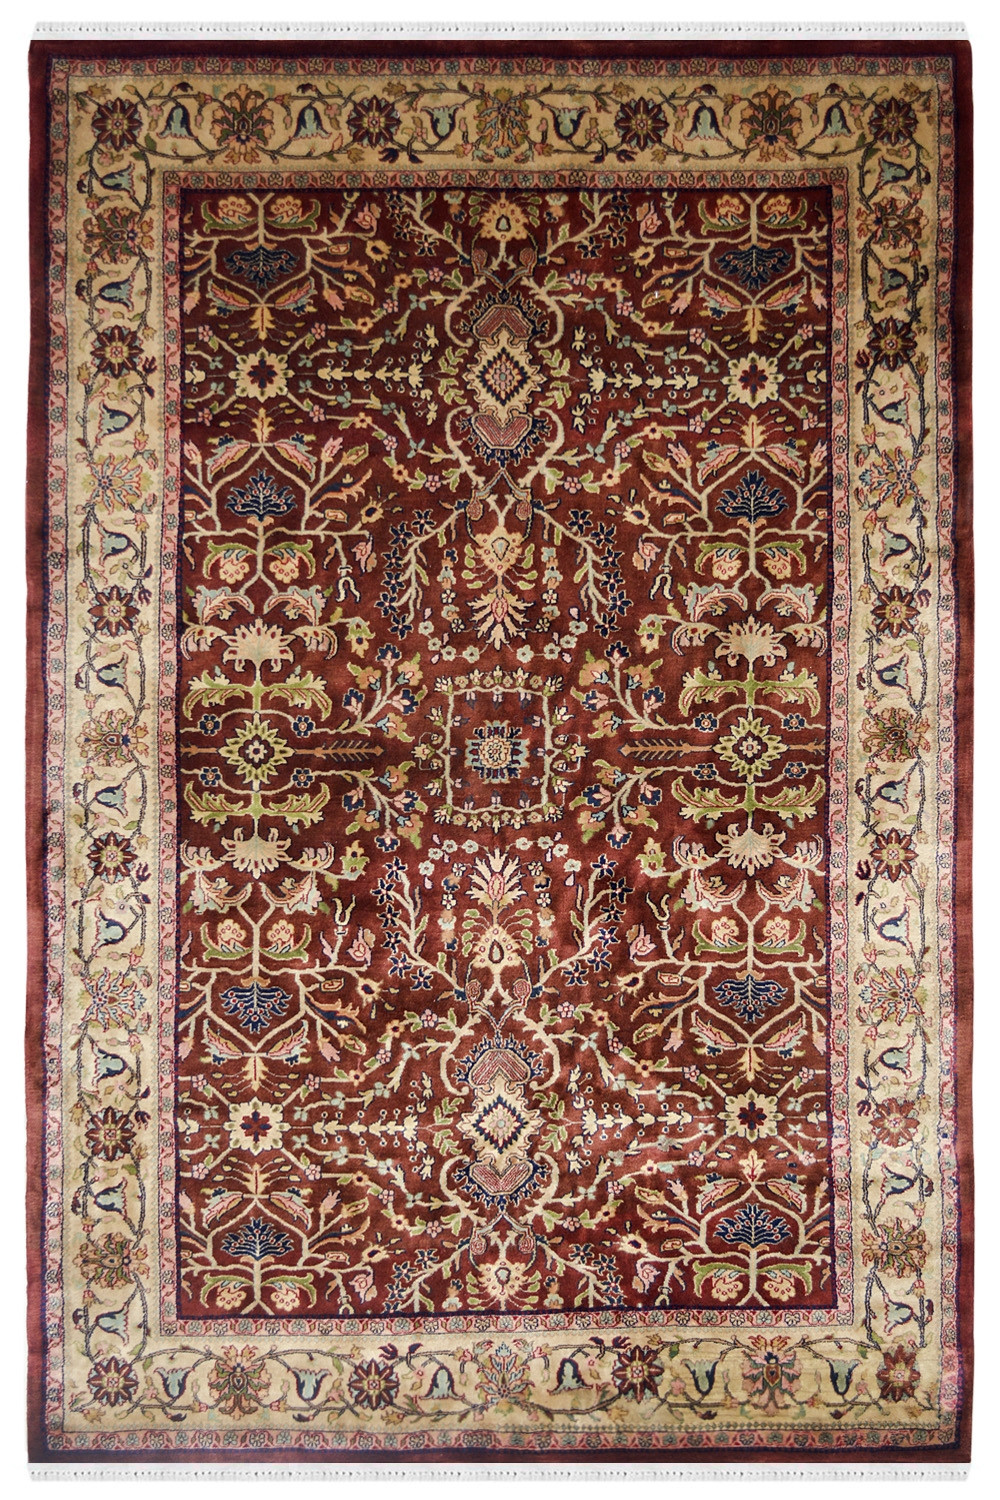 Find Beautiful Traditional Jewel Maroon Handknotted Wool Rug